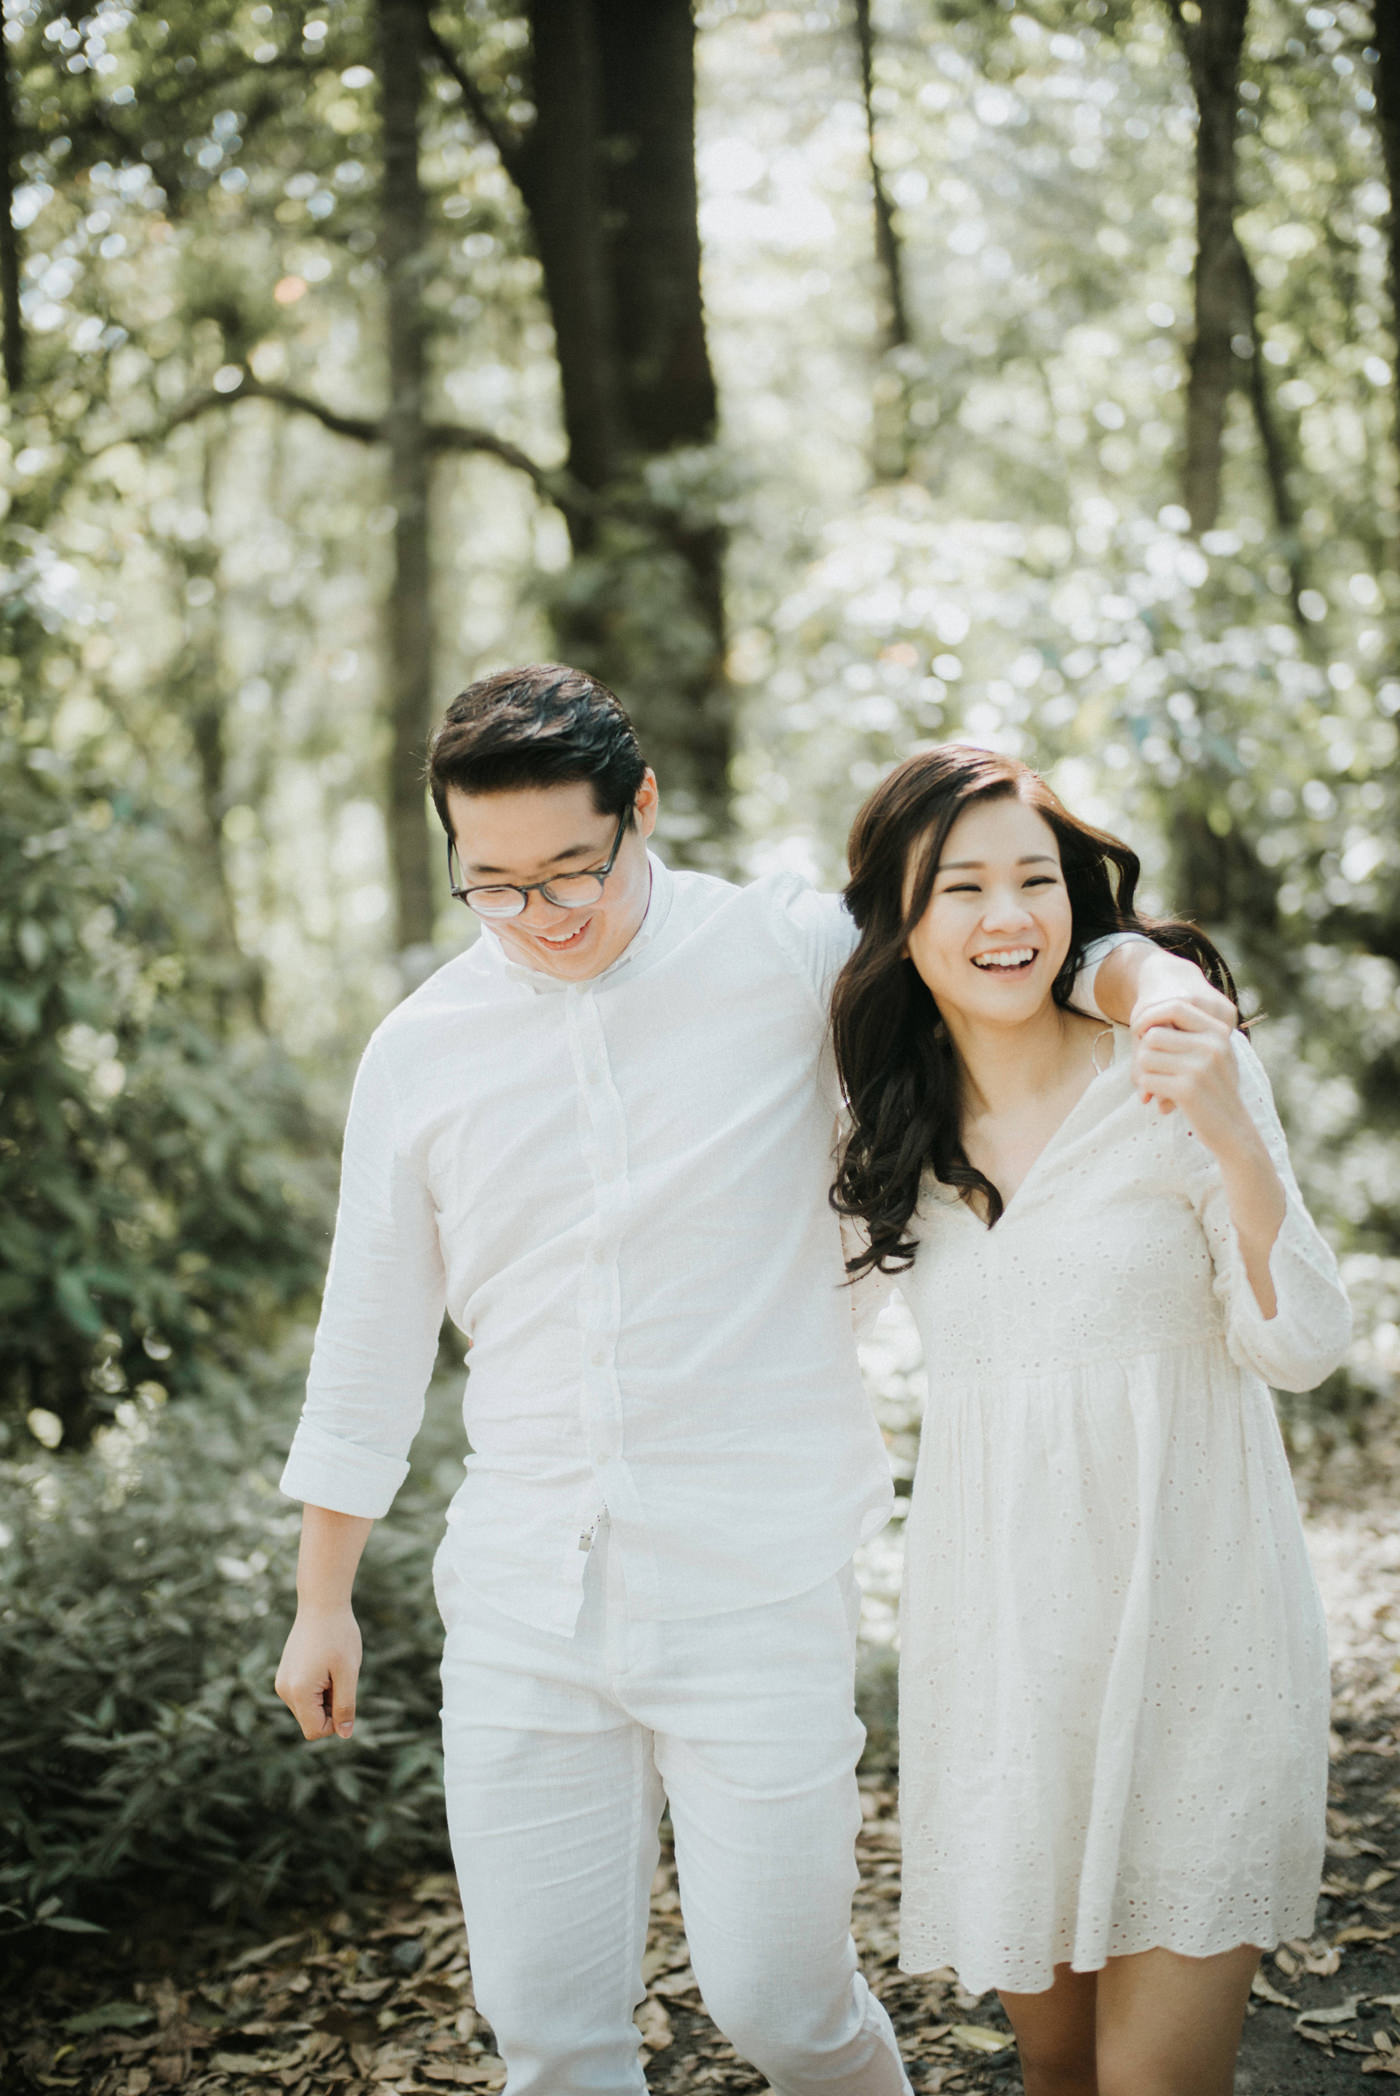 kintamani prewedding caroline ryan connection session iluminen bali wedding photographer destination photography mount batur forest